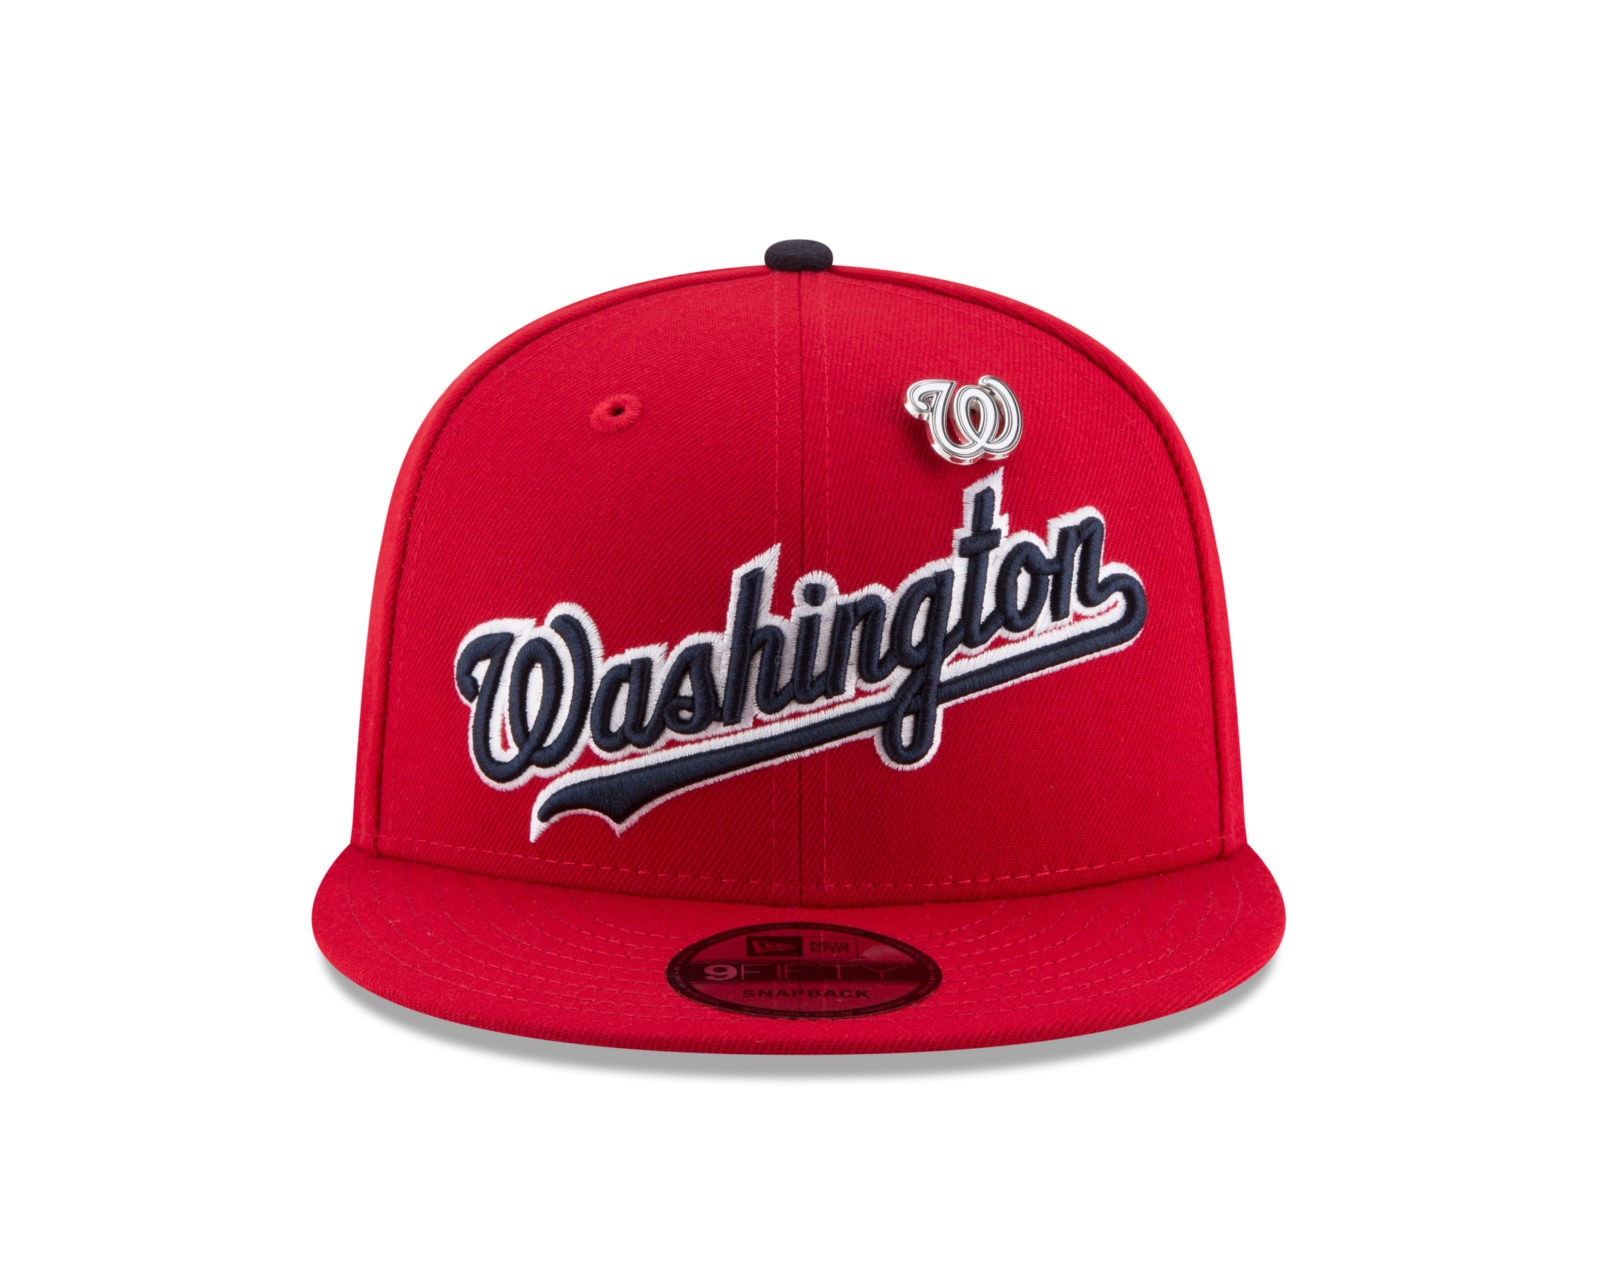 promo code a1ca5 0e04b Washington Nationals New Era PIN SNAP 9Fifty Snapback MLB Adjustable Hat